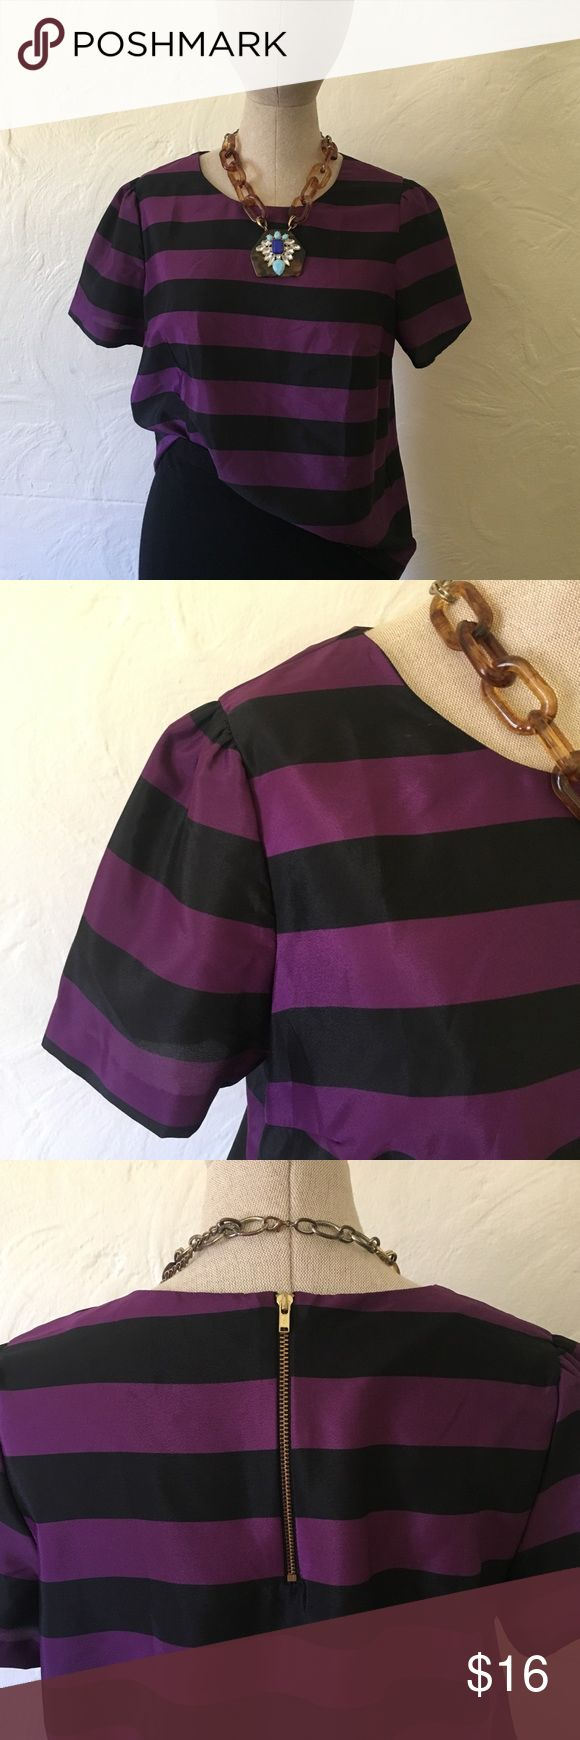 Nordstrom Purple and Black Striped Pleione Blouse Stylish purple and black striped Pleione top with puckered sleeves for a unique and polished look. This blouse is light in weight and can be worn loose or tucked in-to the office or out on a date. On-trend piece that has been gently worn and in great condition. Pleione Tops Blouses